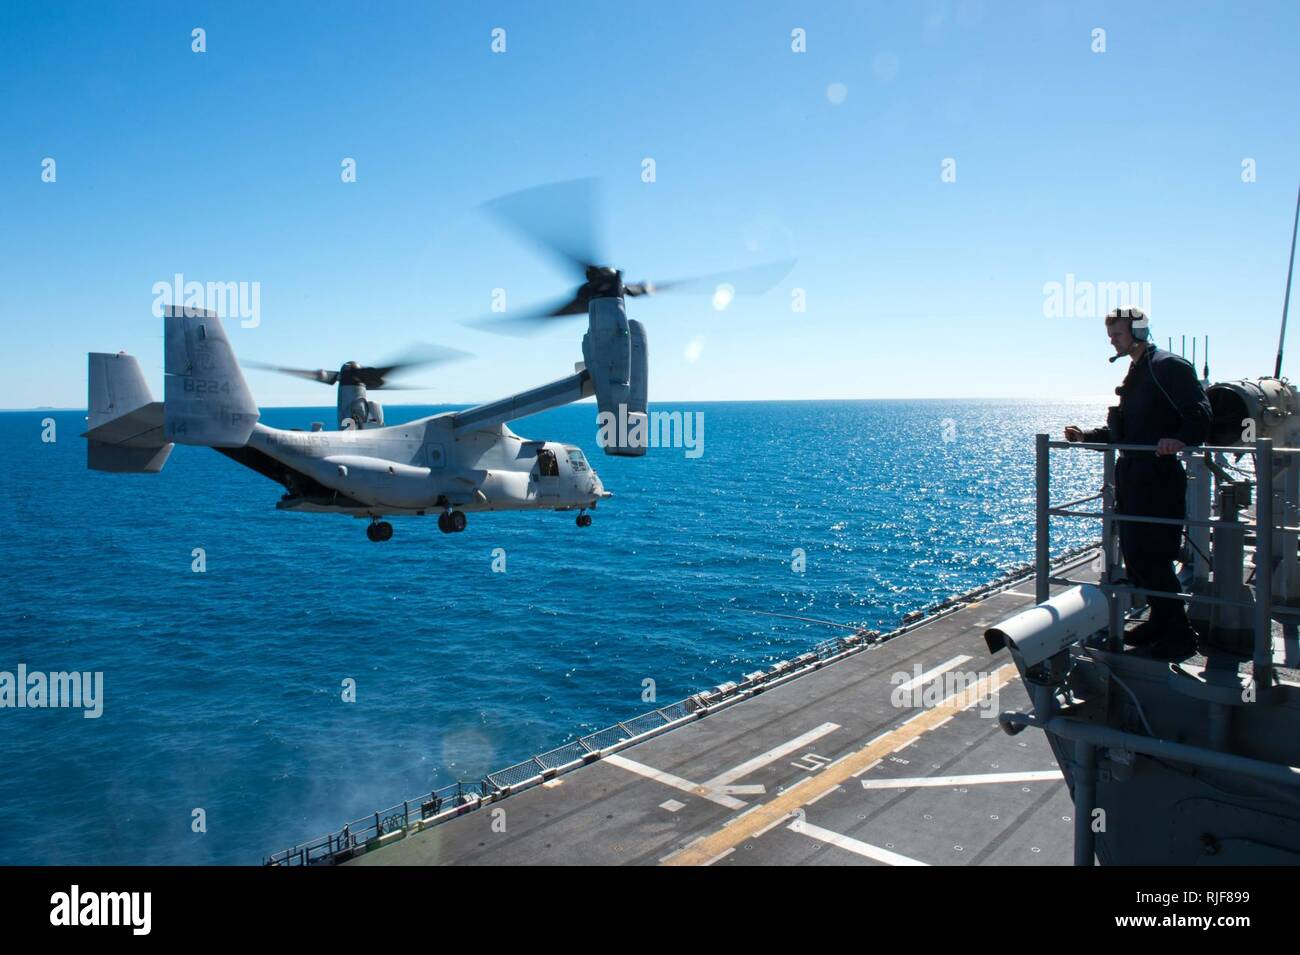 """CORAL SEA (July 20, 2017)  A Sailor observes an MV-22B Osprey assigned to the """"Dragons"""" of Marine Medium Tiltrotor Squadron (VMM) 265 (Reinforced) take off from the flight deck of the amphibious assault ship USS Bonhomme Richard (LHD 6) during Talisman Saber 17. Talisman Saber is a biennial U.S.-Australia bilateral exercise held off the coast of Australia meant to achieve interoperability and strengthen the U.S.-Australia alliance. Stock Photo"""